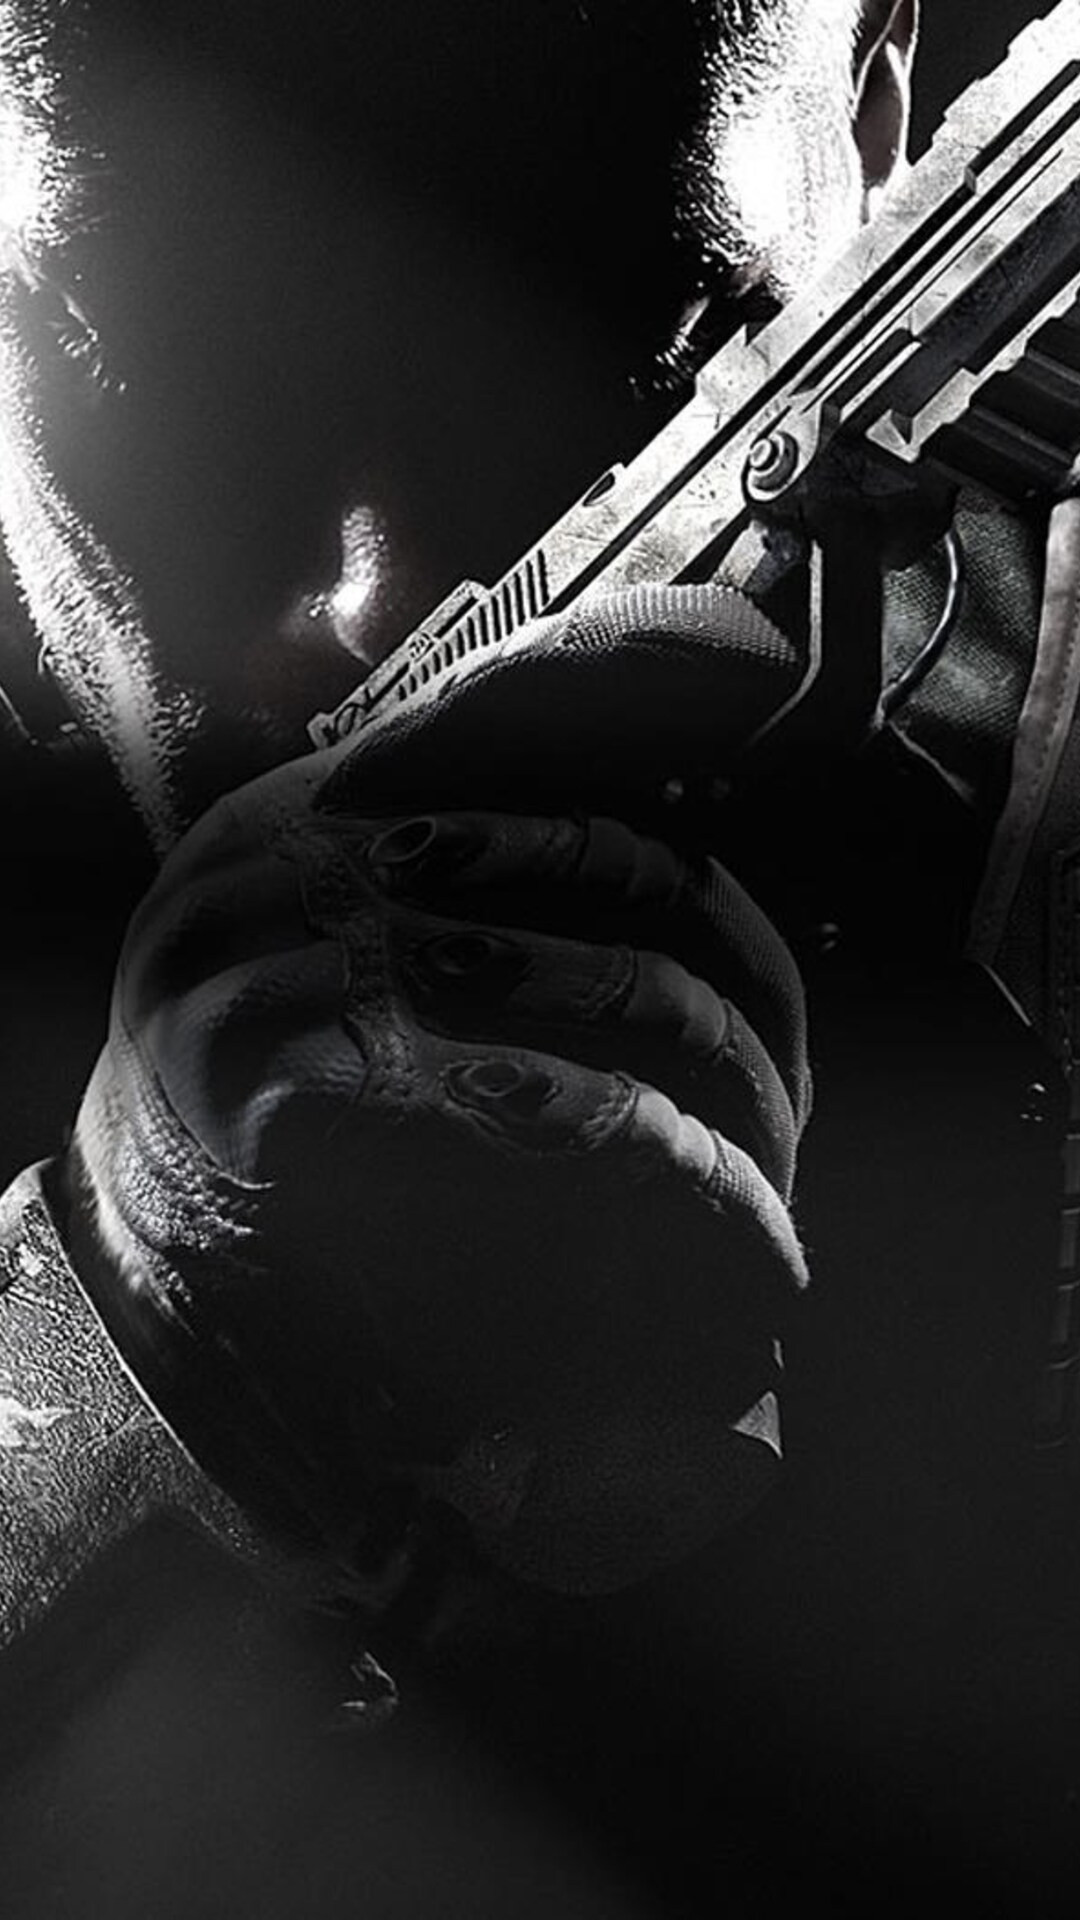 call of duty black ops 2 wallpaper 1080x1920